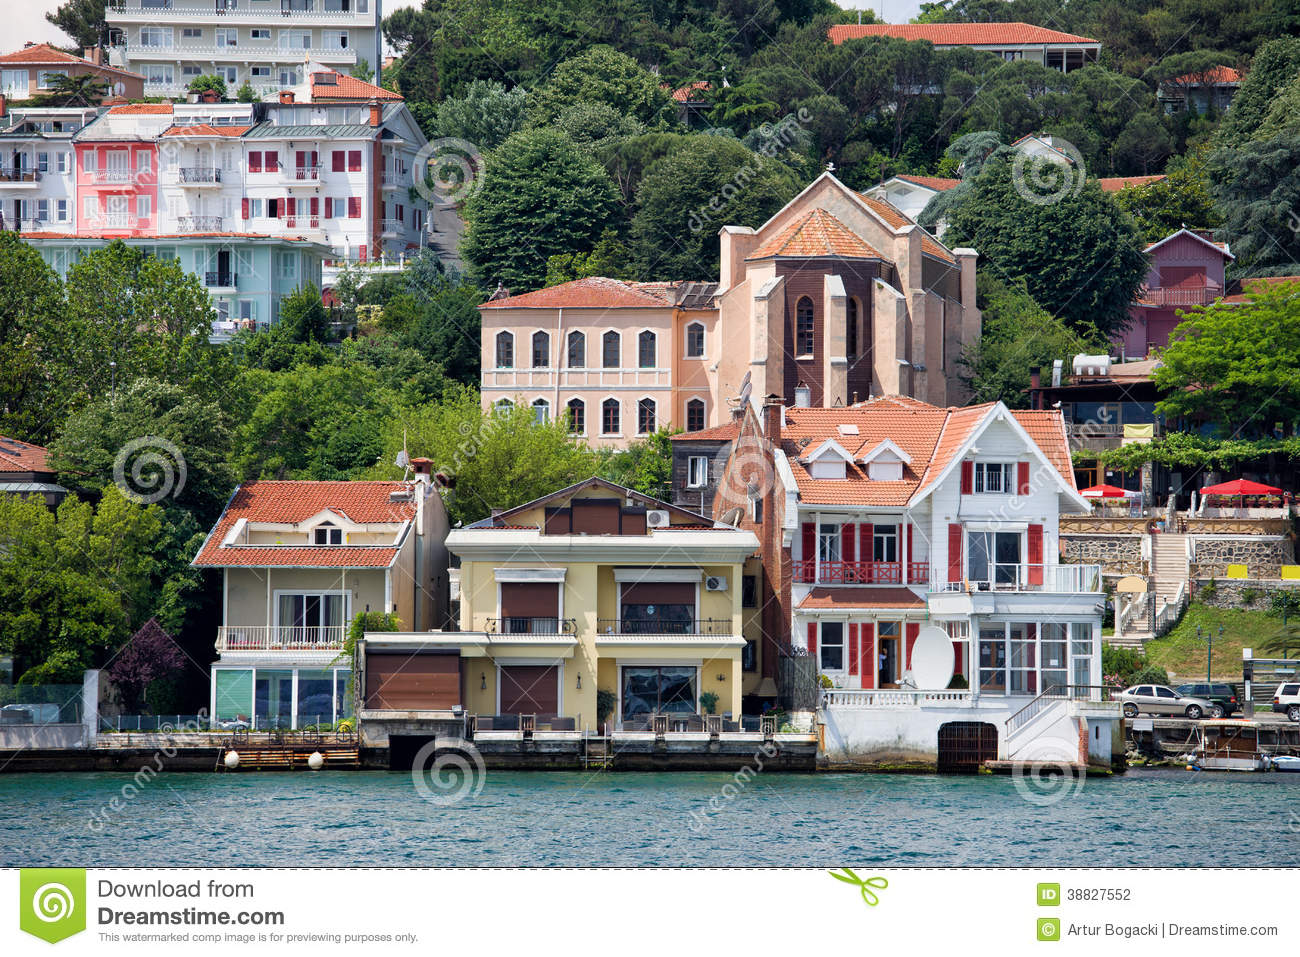 bosphorus map with Stock Photography Waterside Houses Along Bosphorus Strait Yenikoy Quarter Istanbul Turkey Image38827552 on 3665458301 together with Kanal  C4 B0stanbul additionally 7592948090 as well Istanbul likewise A Sunken Palace In Istanbul Basilica Cistern.